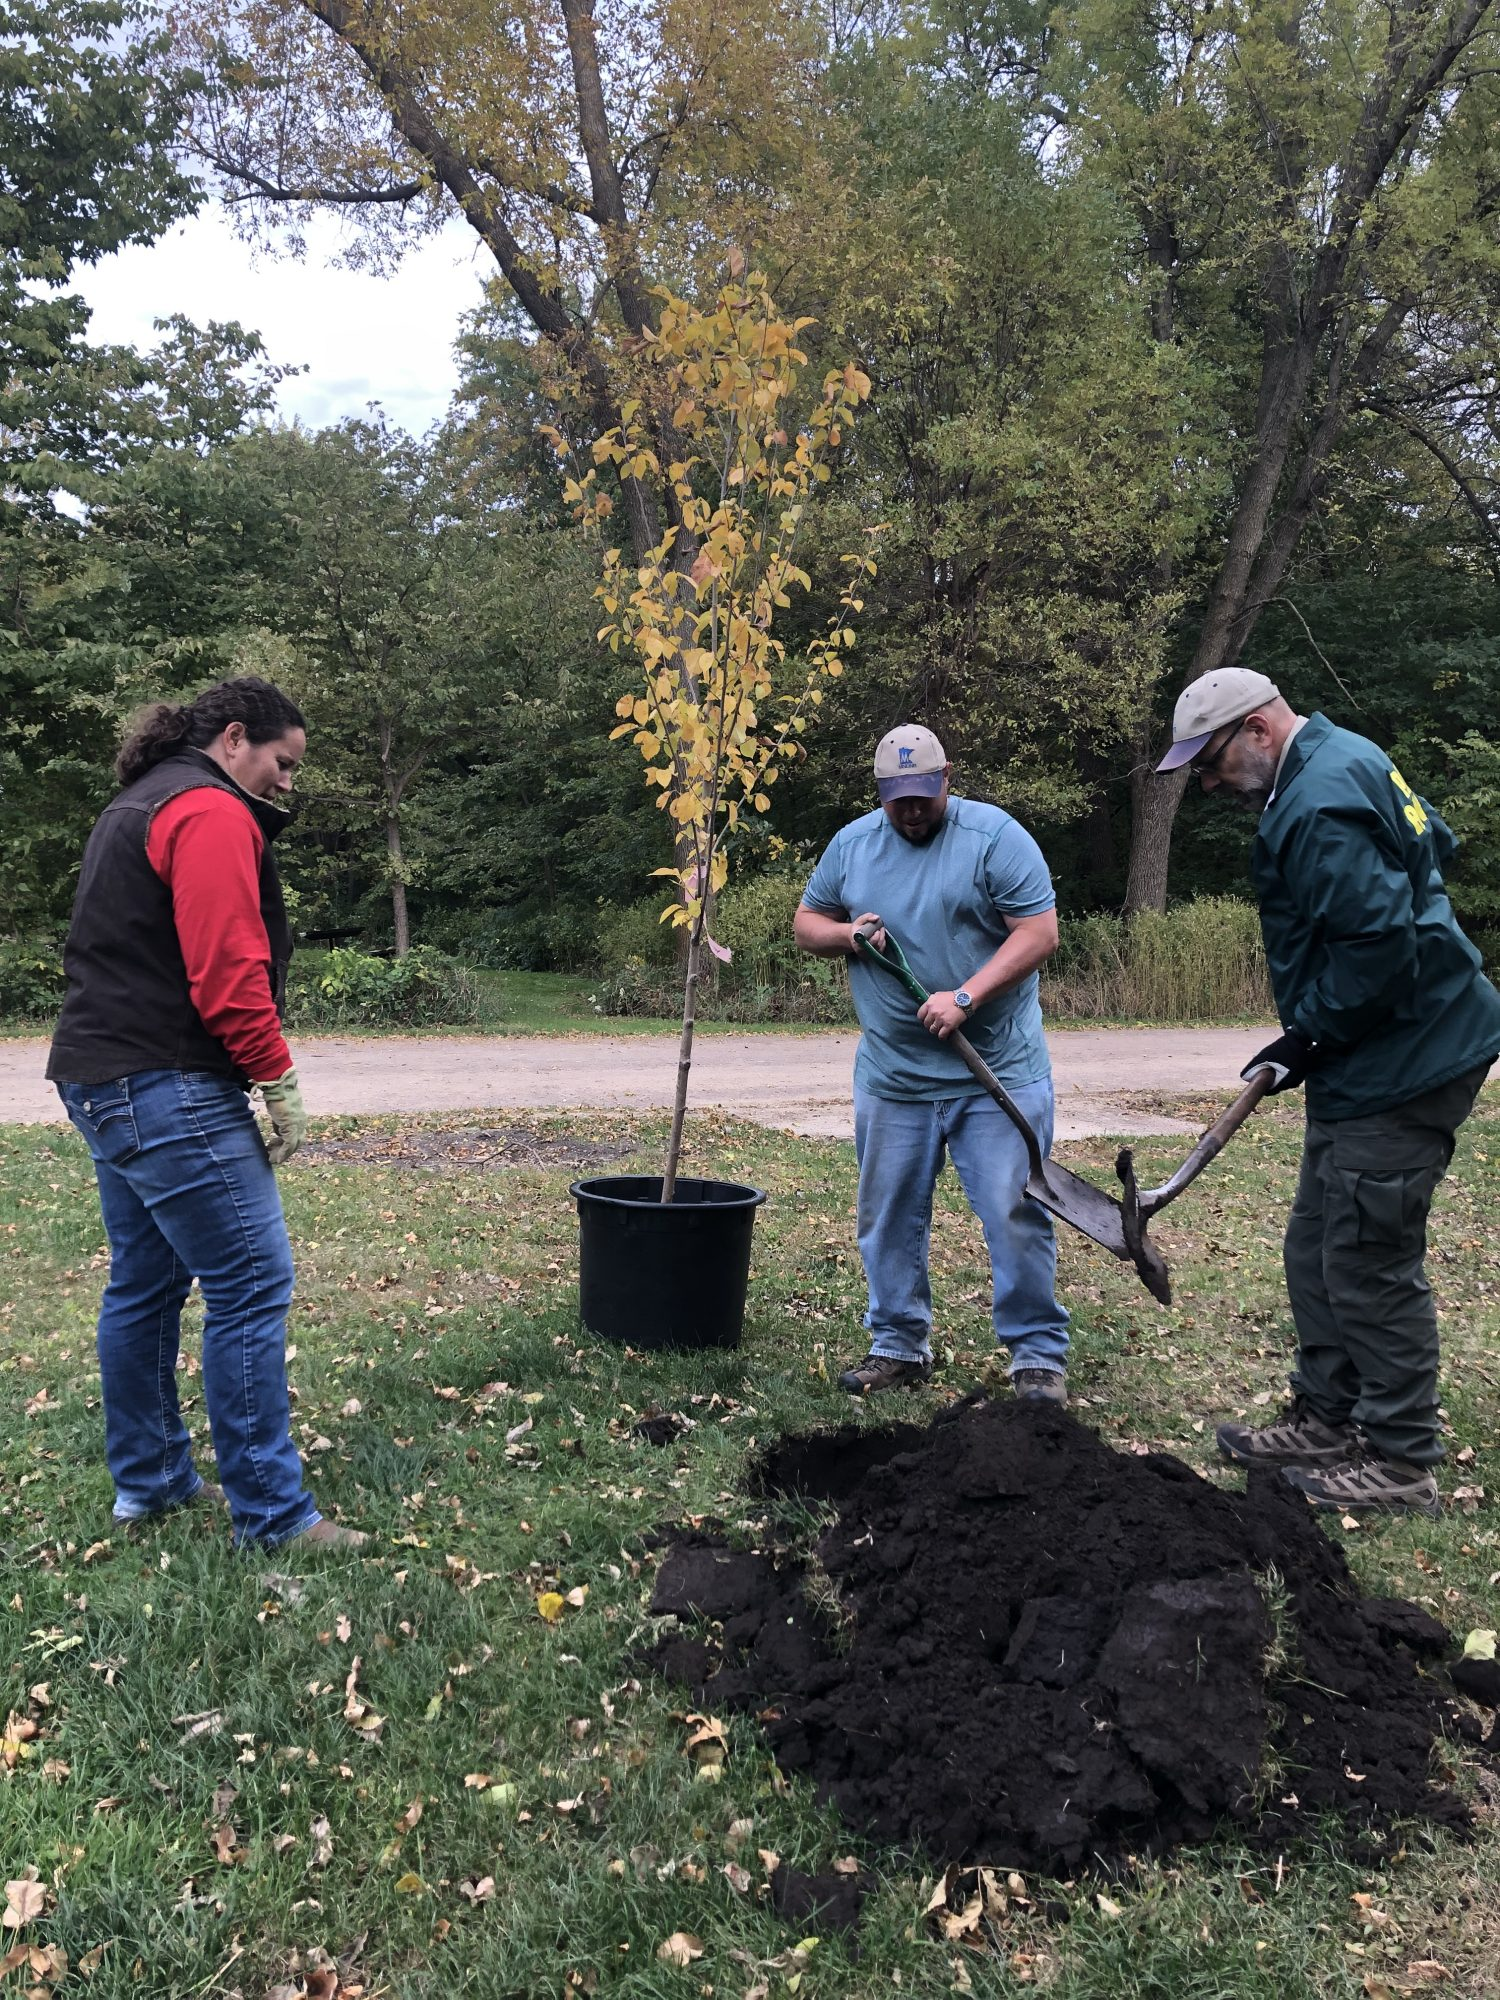 volunteers and a park staff member use shovels to plant a tree